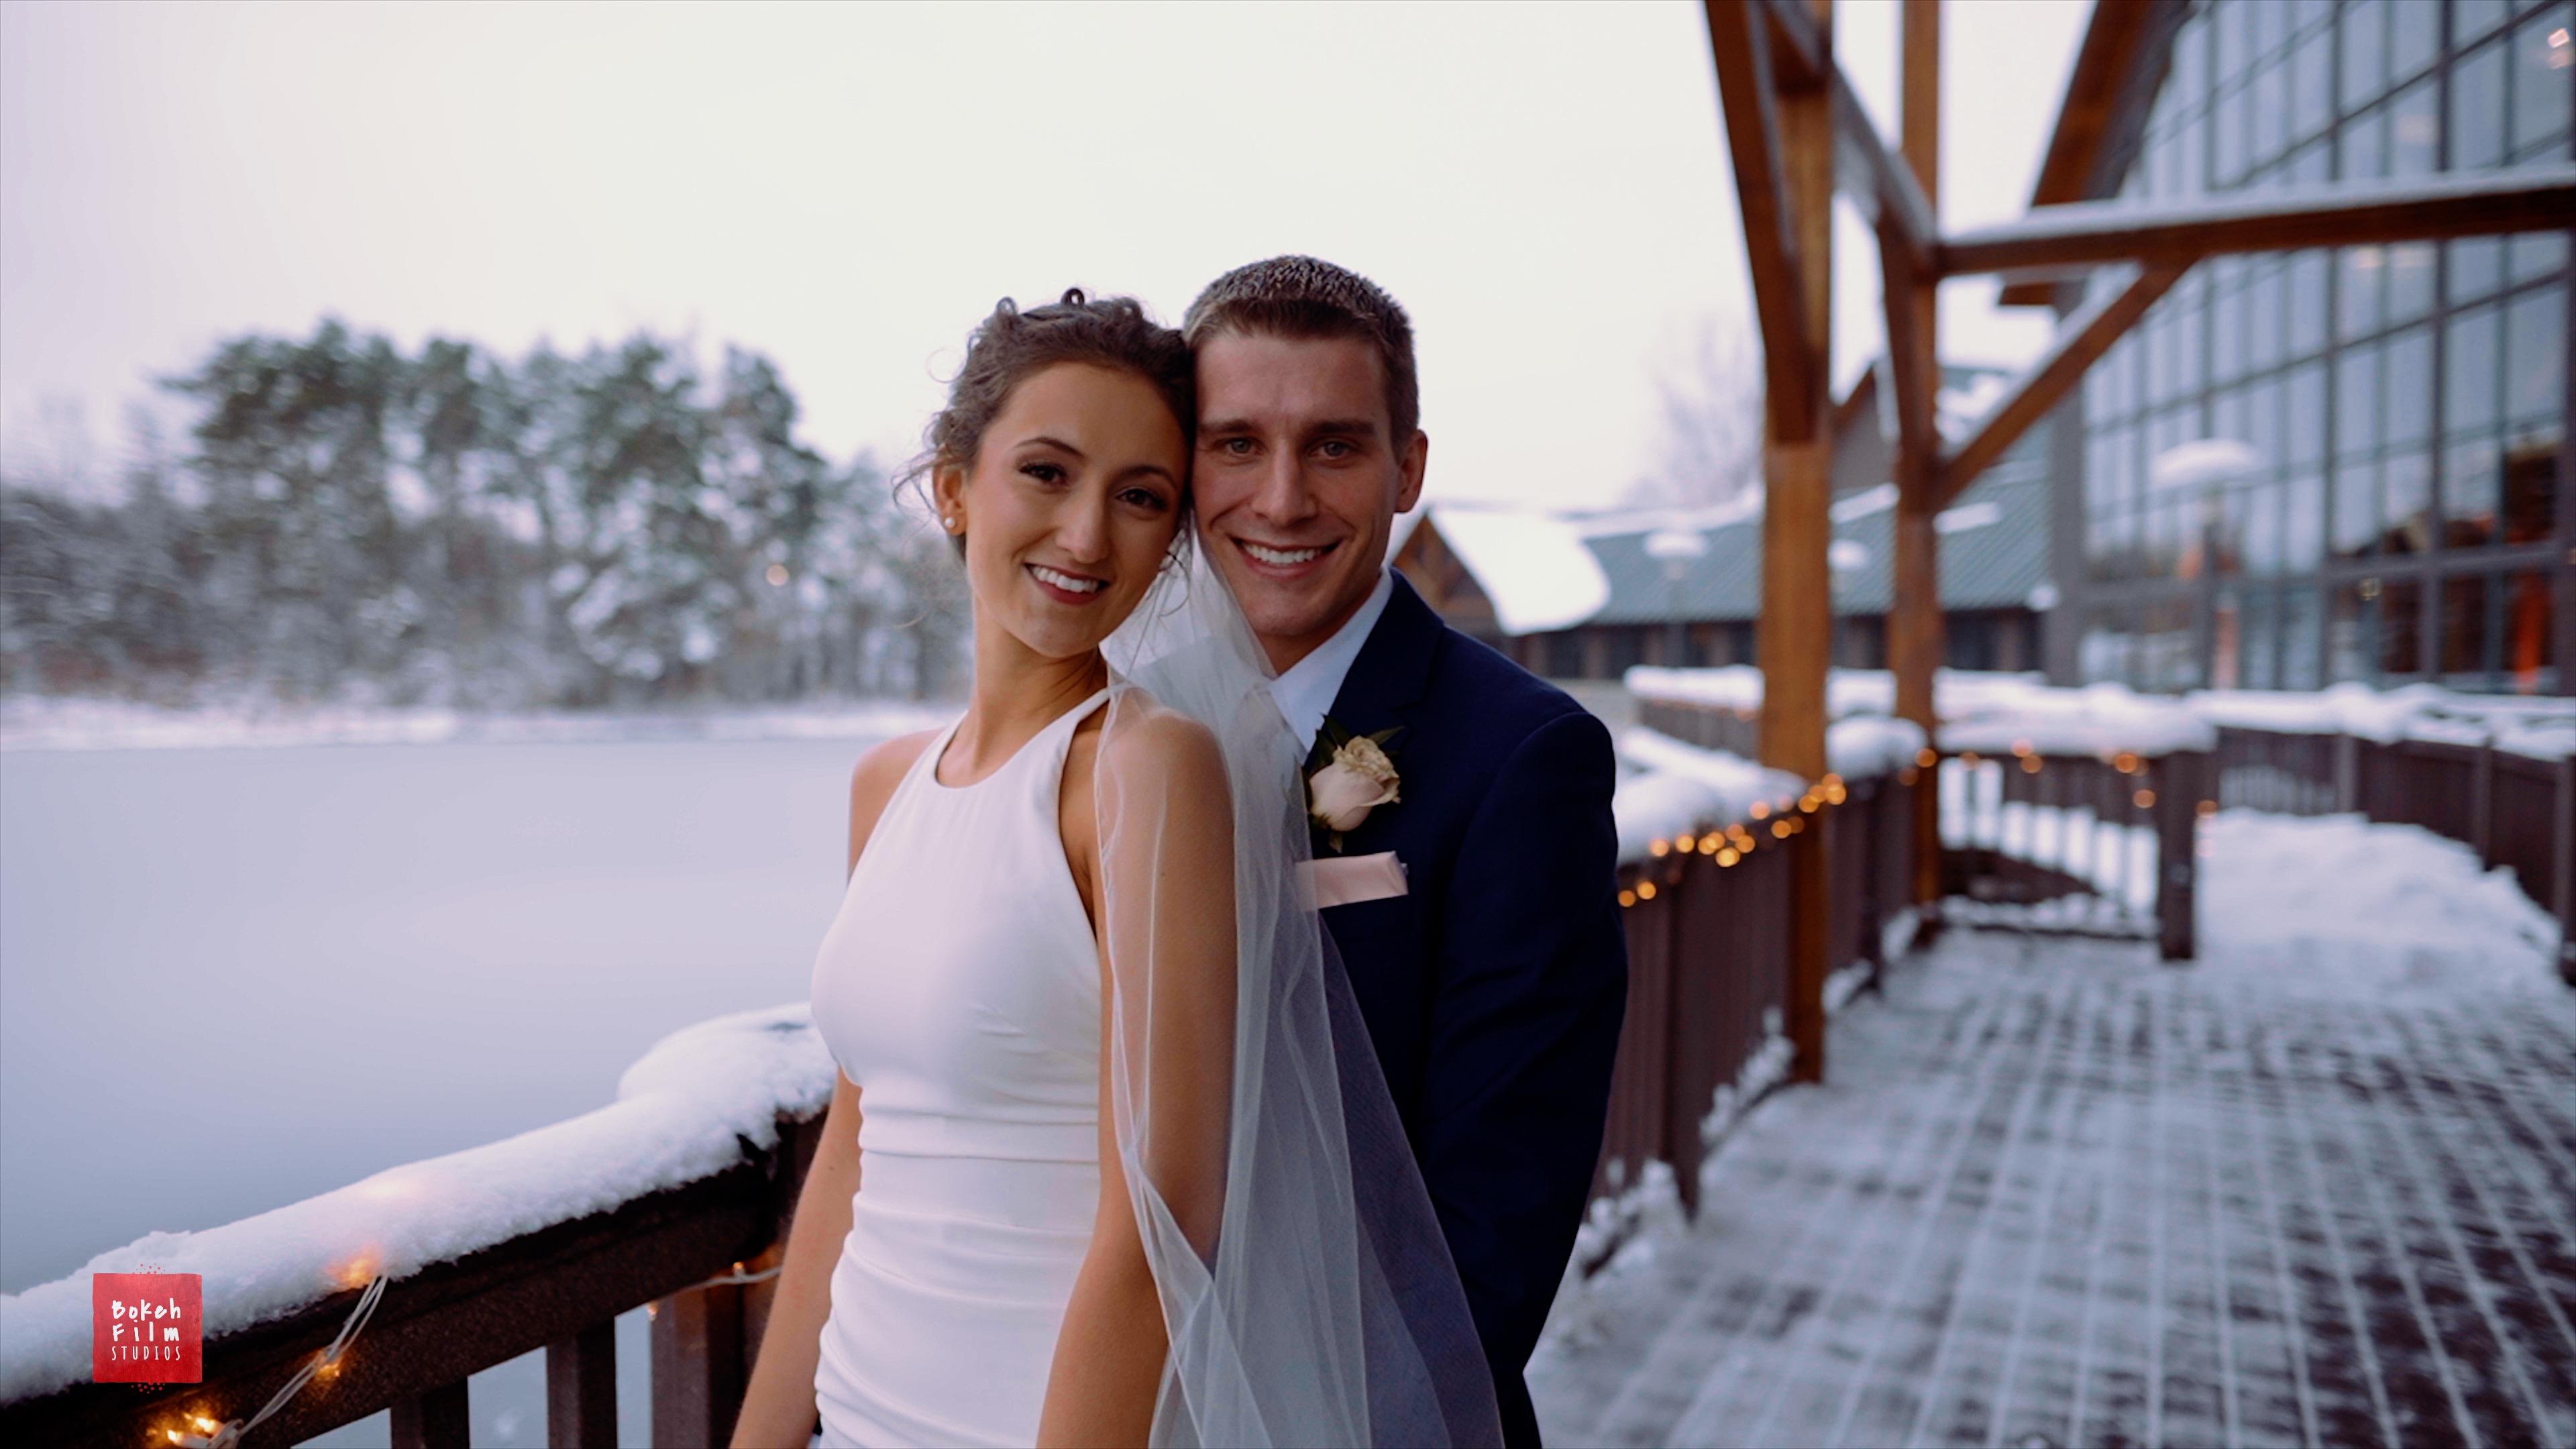 Zach + Siobhan | Skaneateles, New York | The Lodge at Welsh Allyn